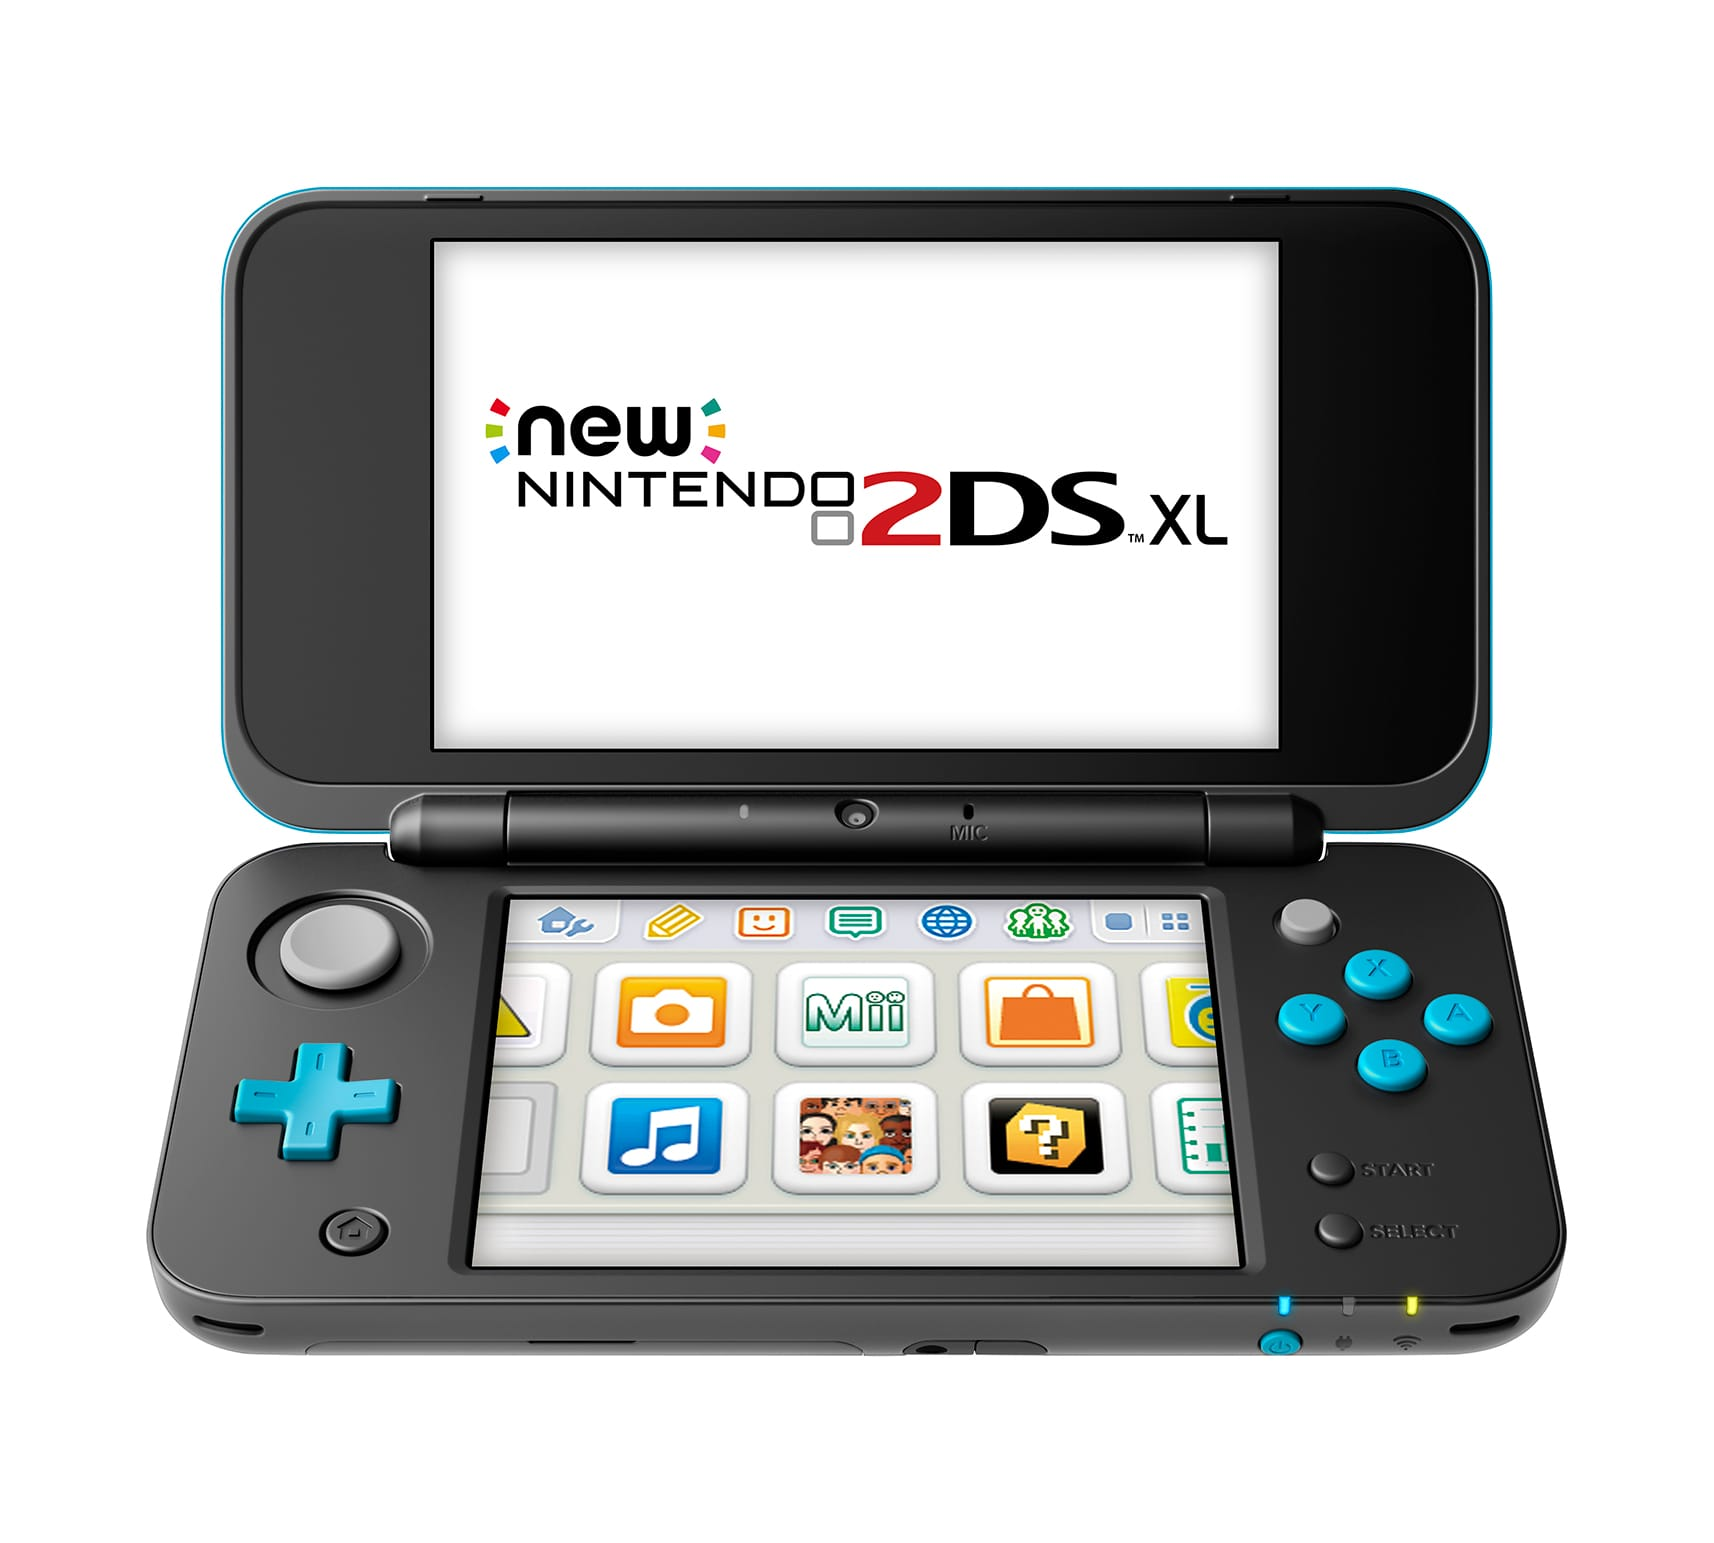 Nintendo 2DS XL System w/ Mario Kart 7 Pre-installed, Black & Turquoise Back in stock $99